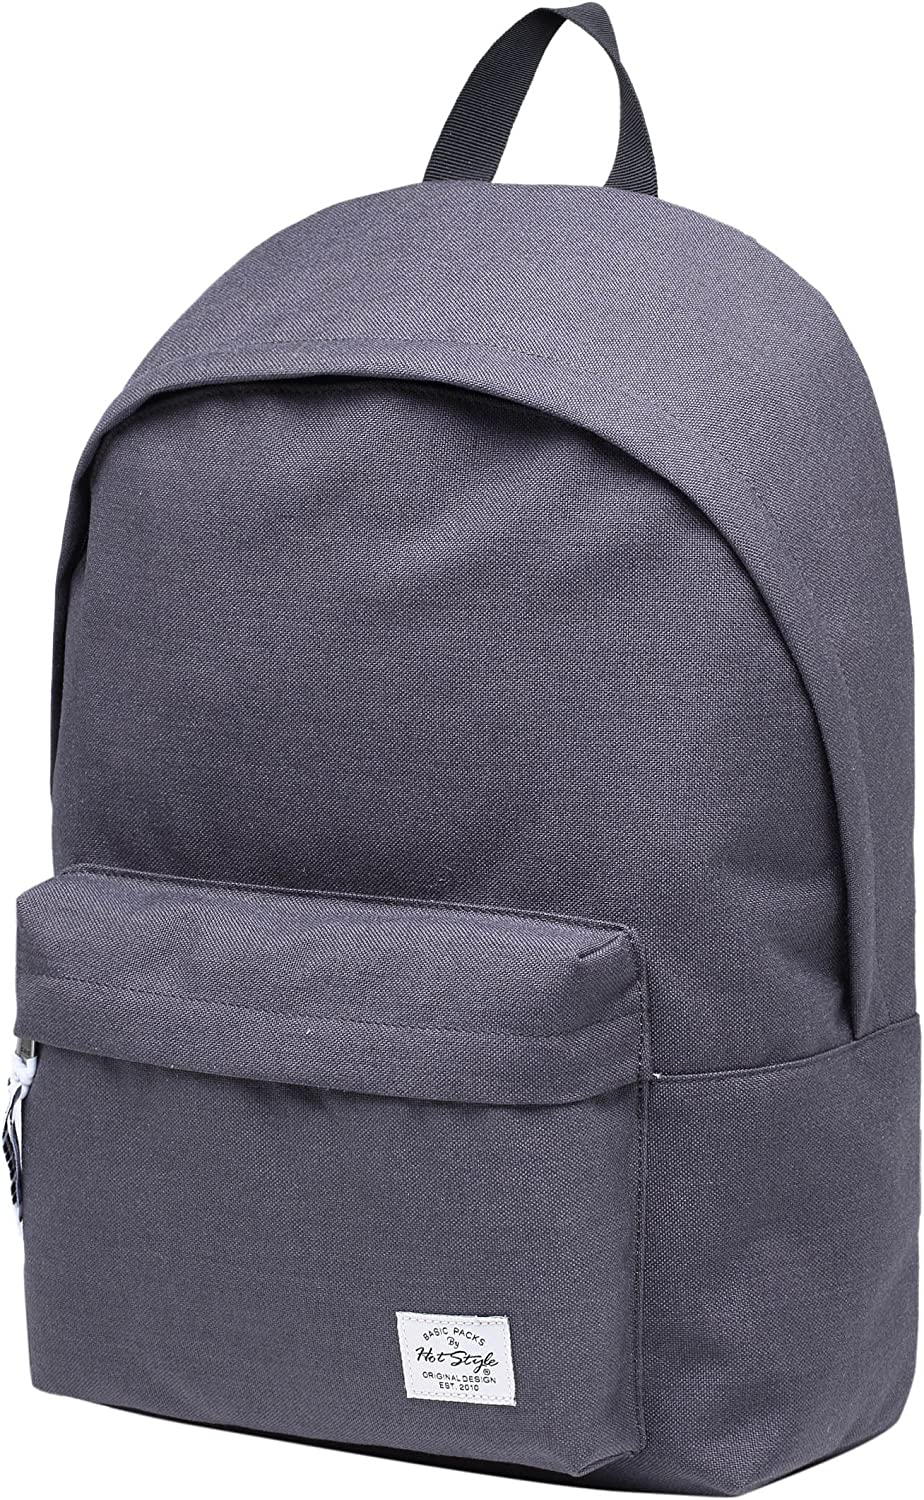 KLEPPR Classic Simple Backpack Fits 15.6-inch Laptop 17.5 x11.6 x4.7 DimGray